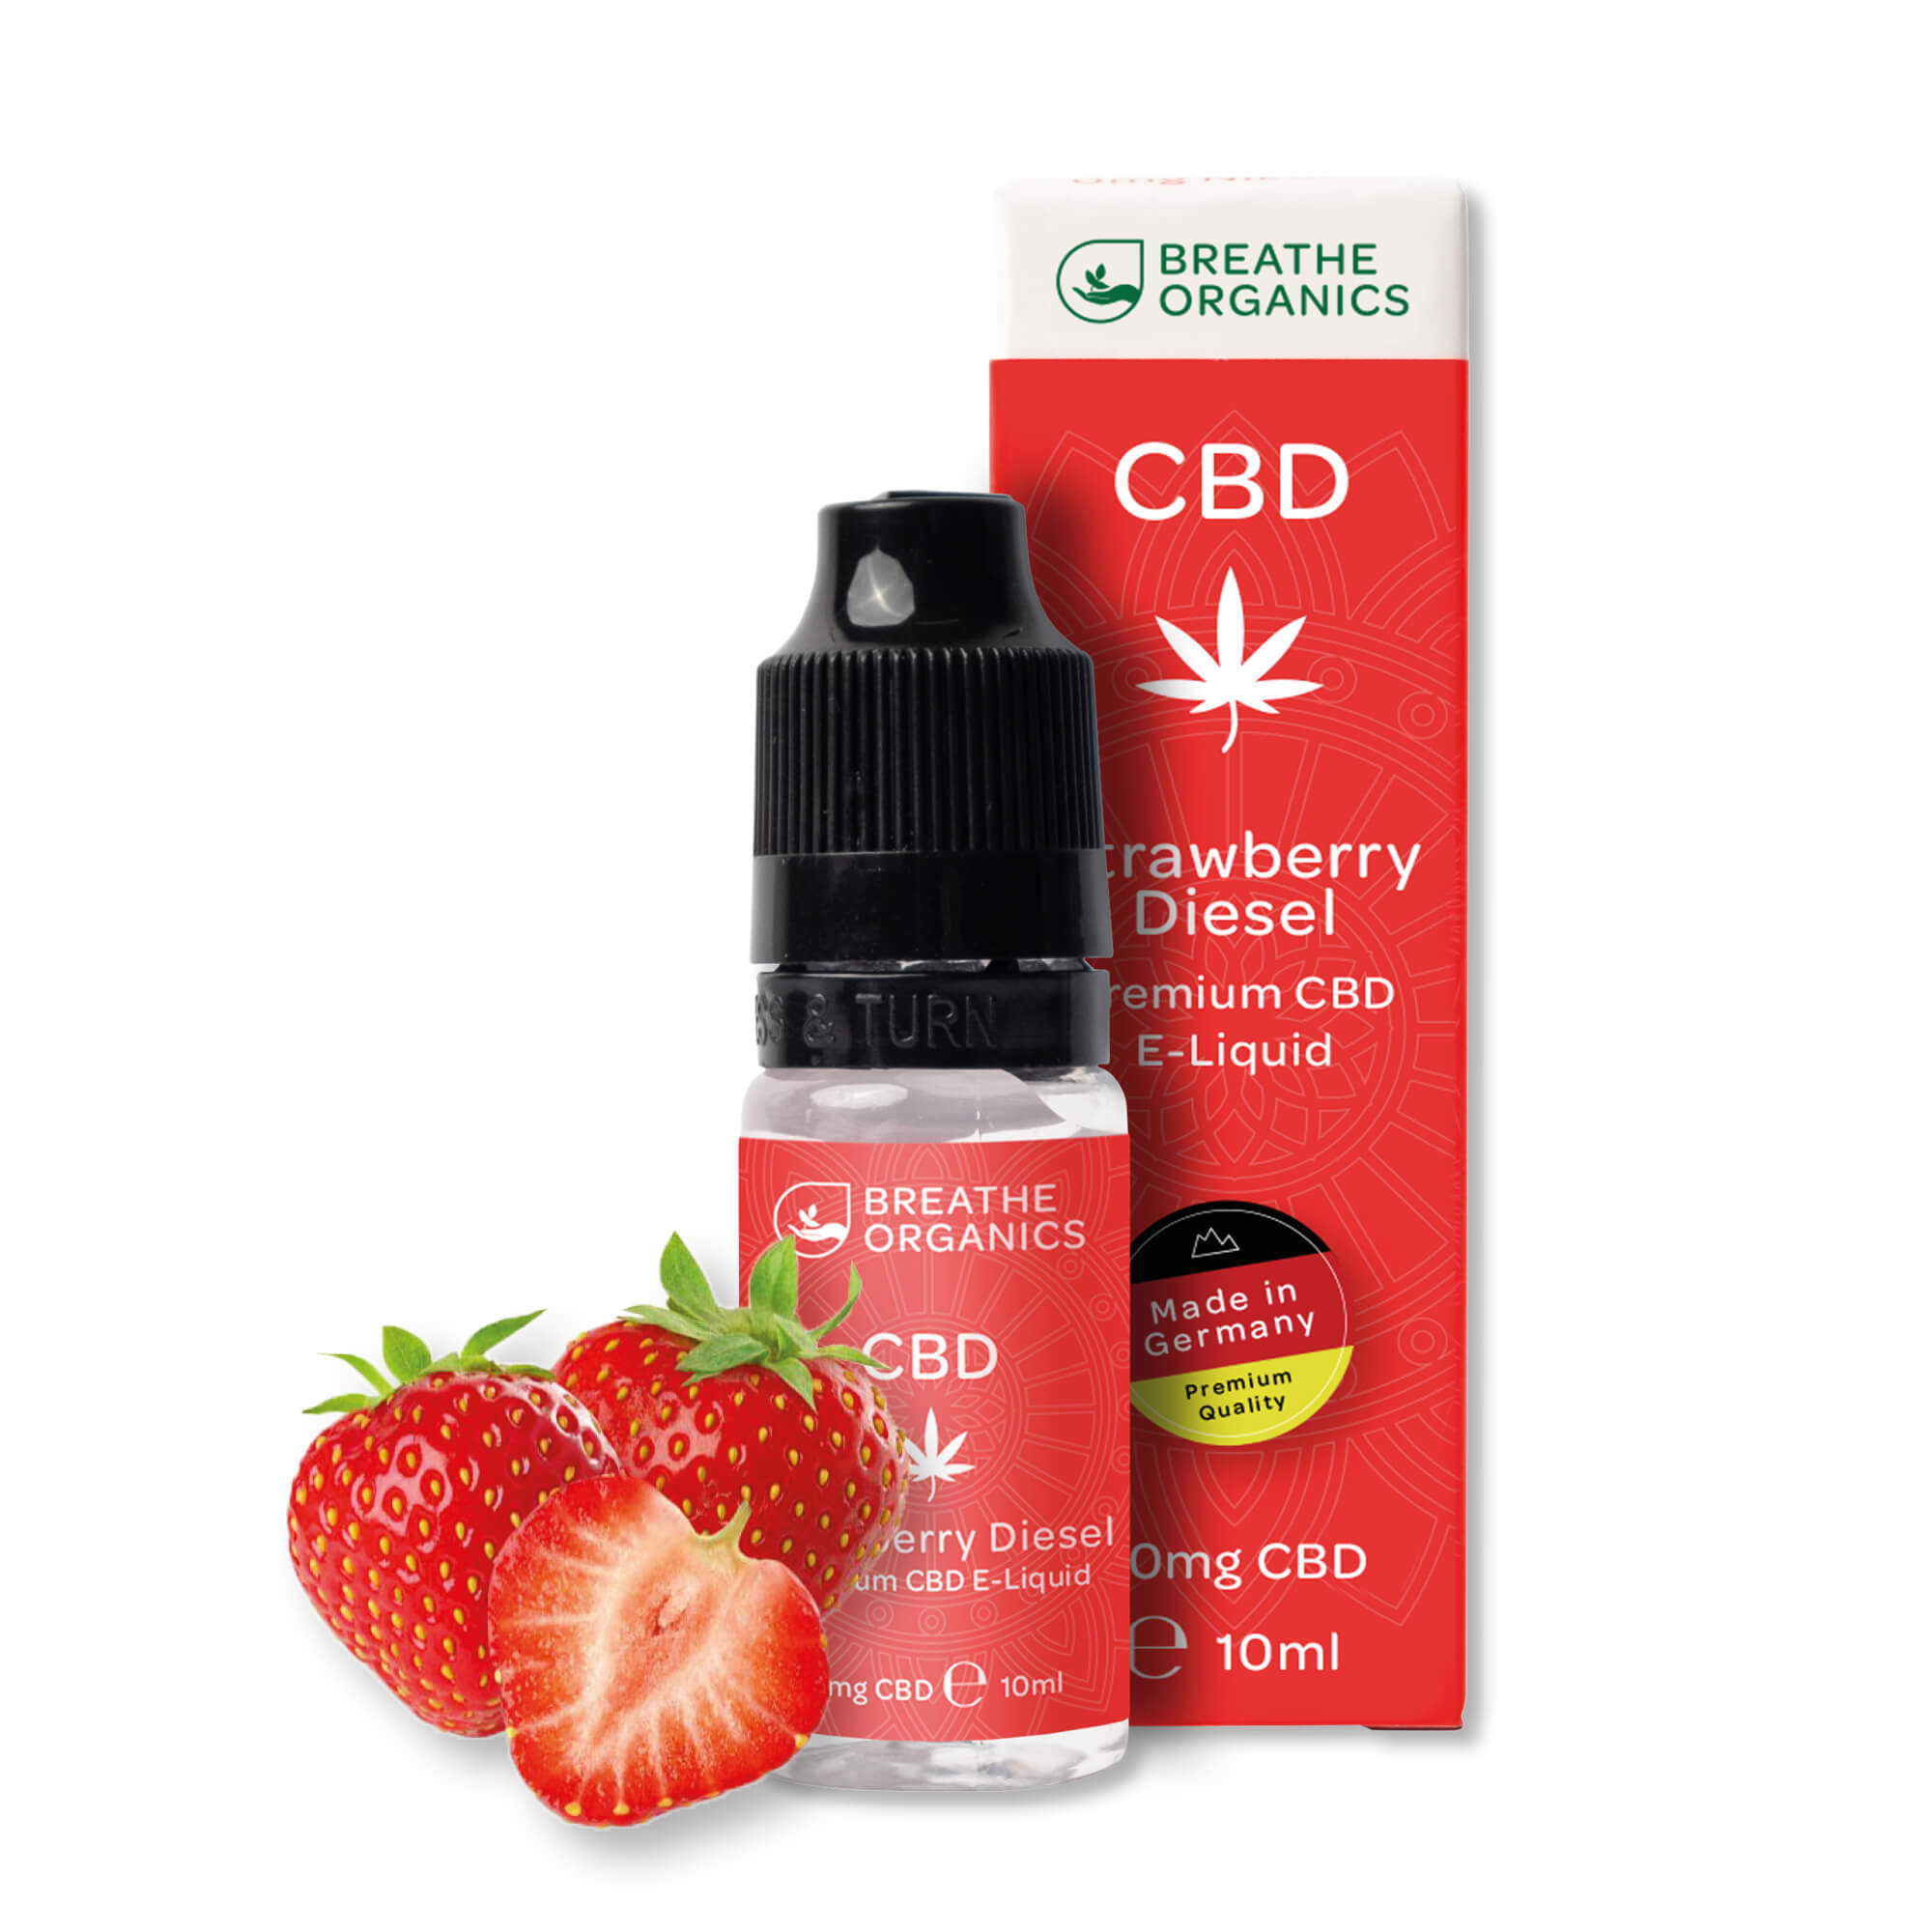 Breathe Organics - Premium CBD E-Liquid Strawberry Diesel 600mg